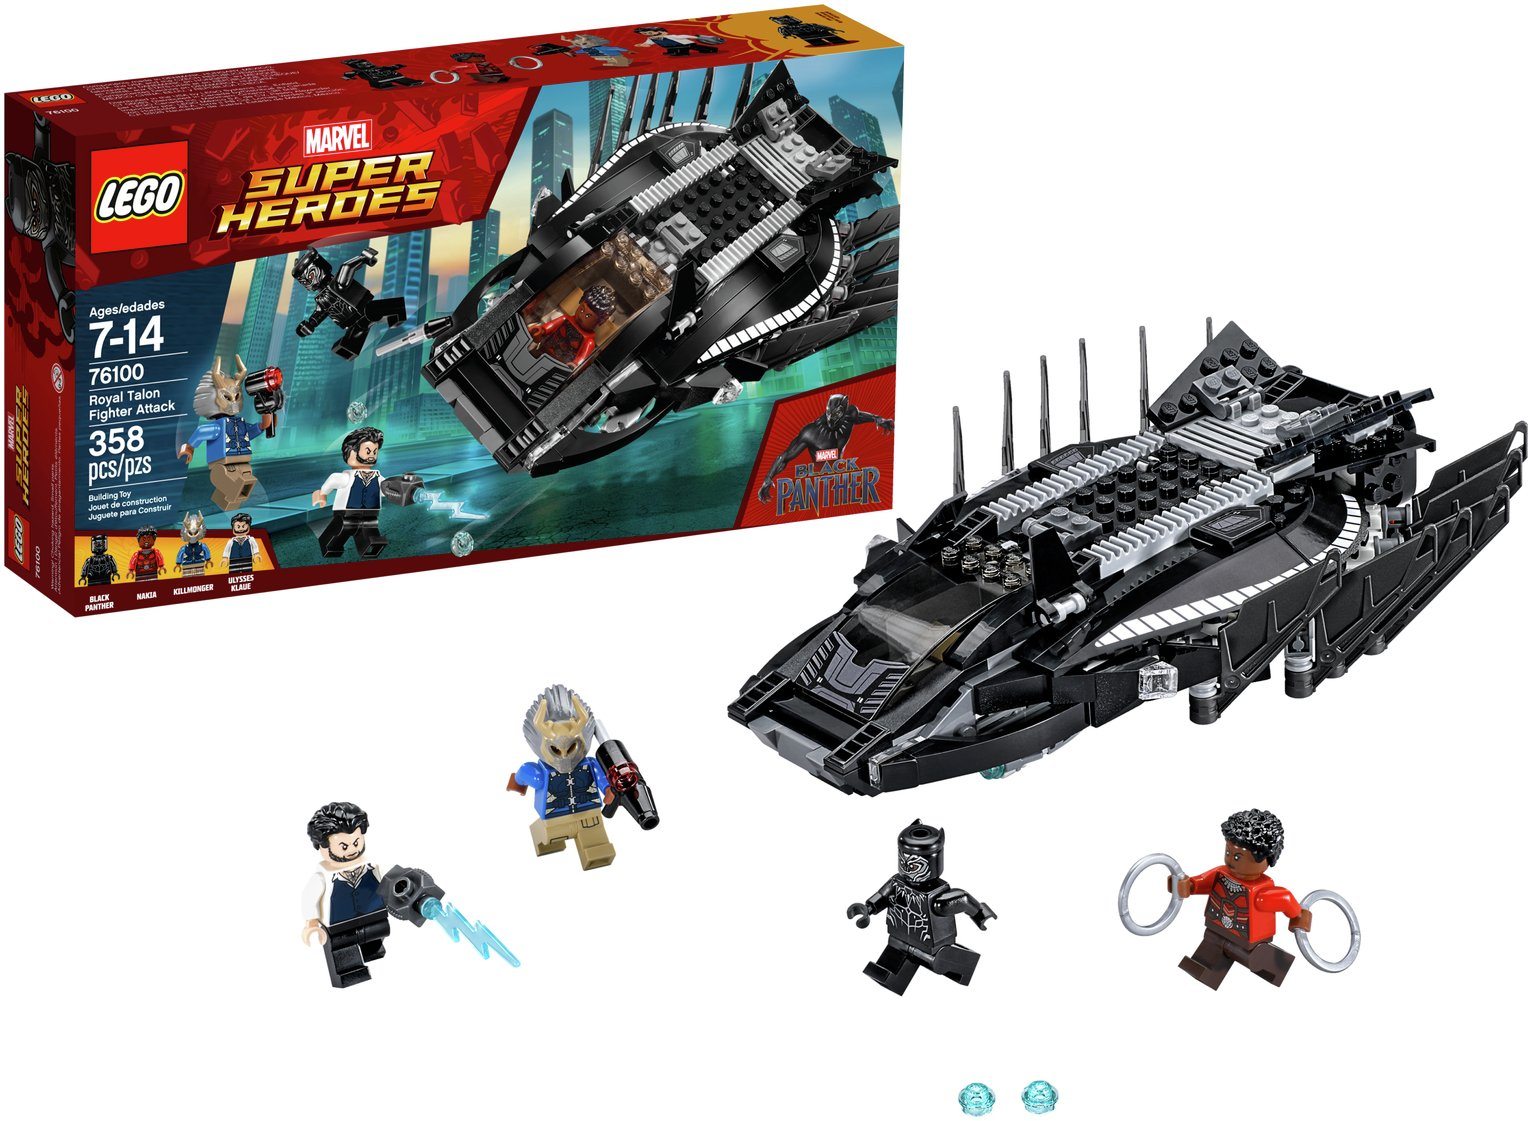 LEGO Black Panther Royal Talon Fighter Attack - 76100